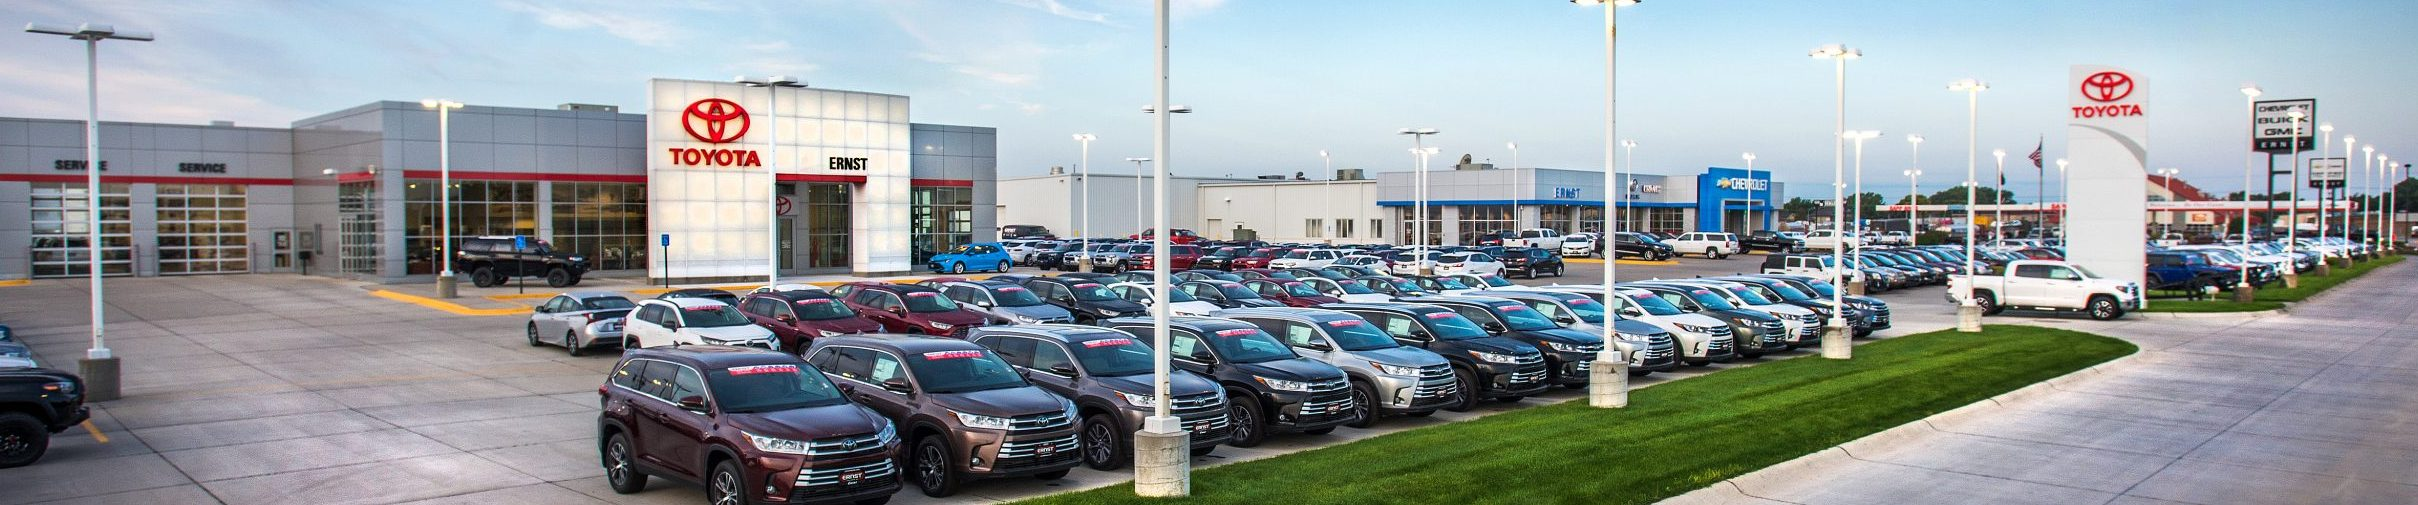 Ernst Auto Group Dealerships